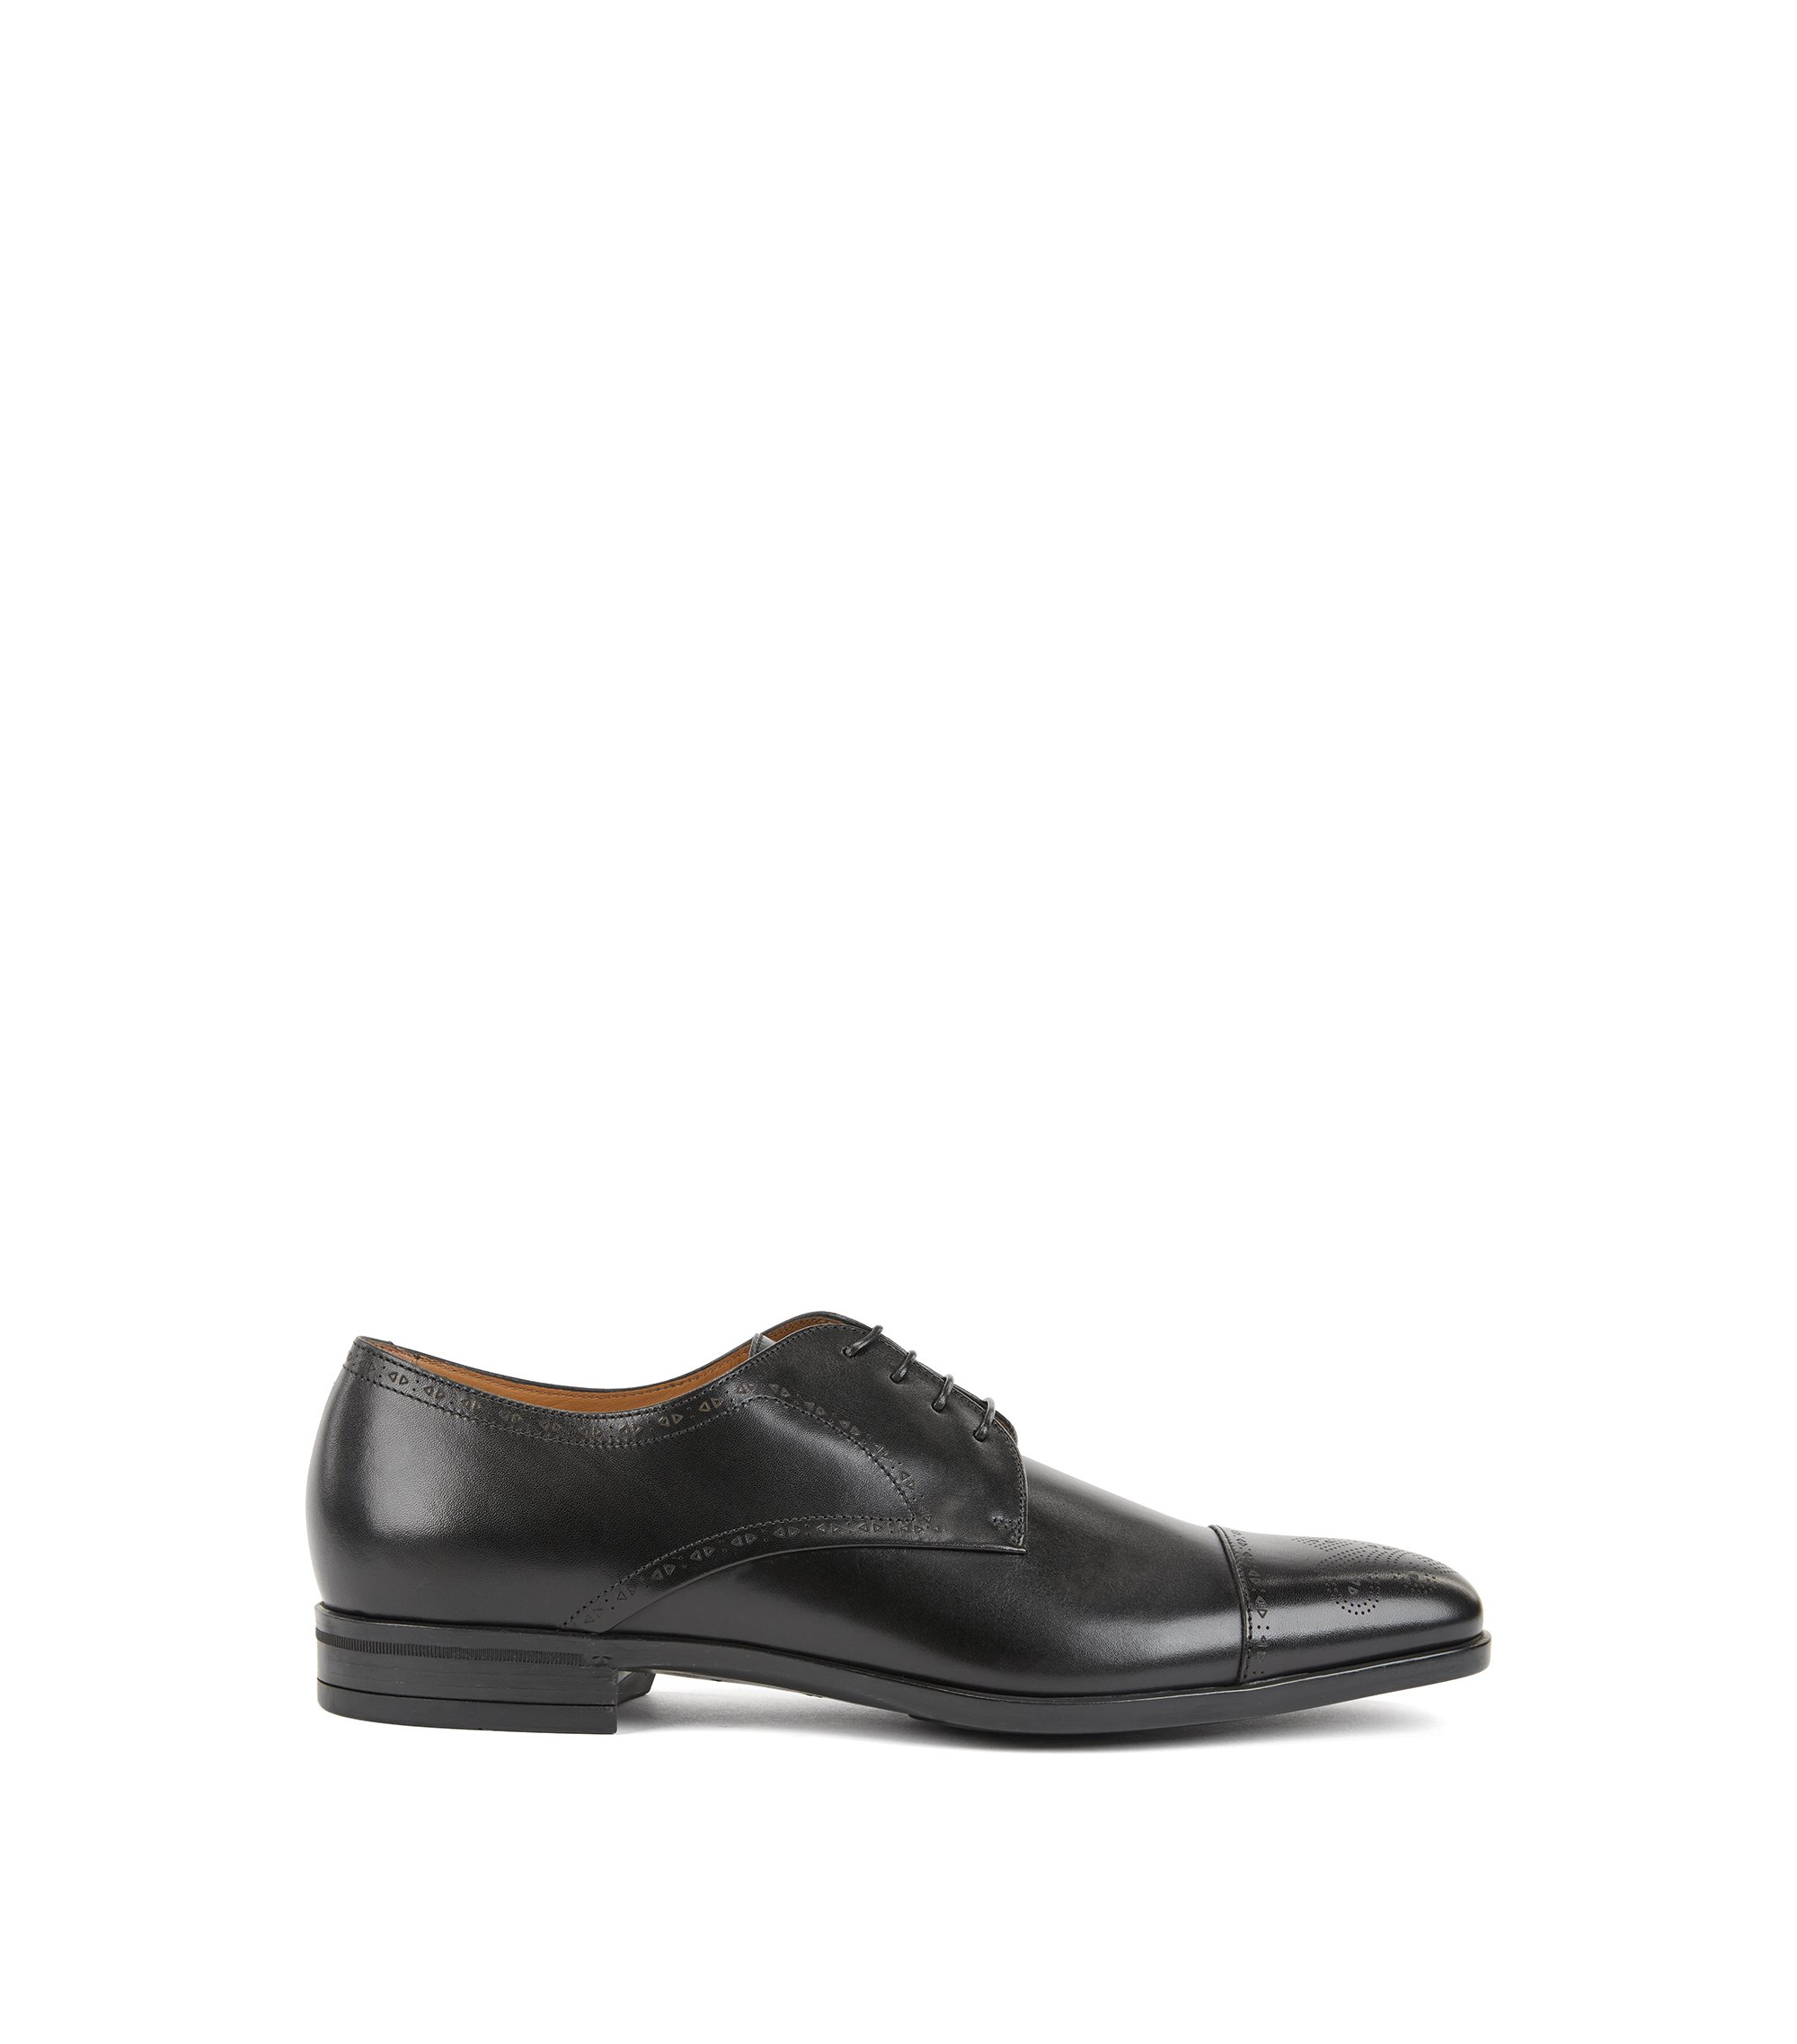 Laser-cut Derby shoes in burnished leather with brogue detailing, Black